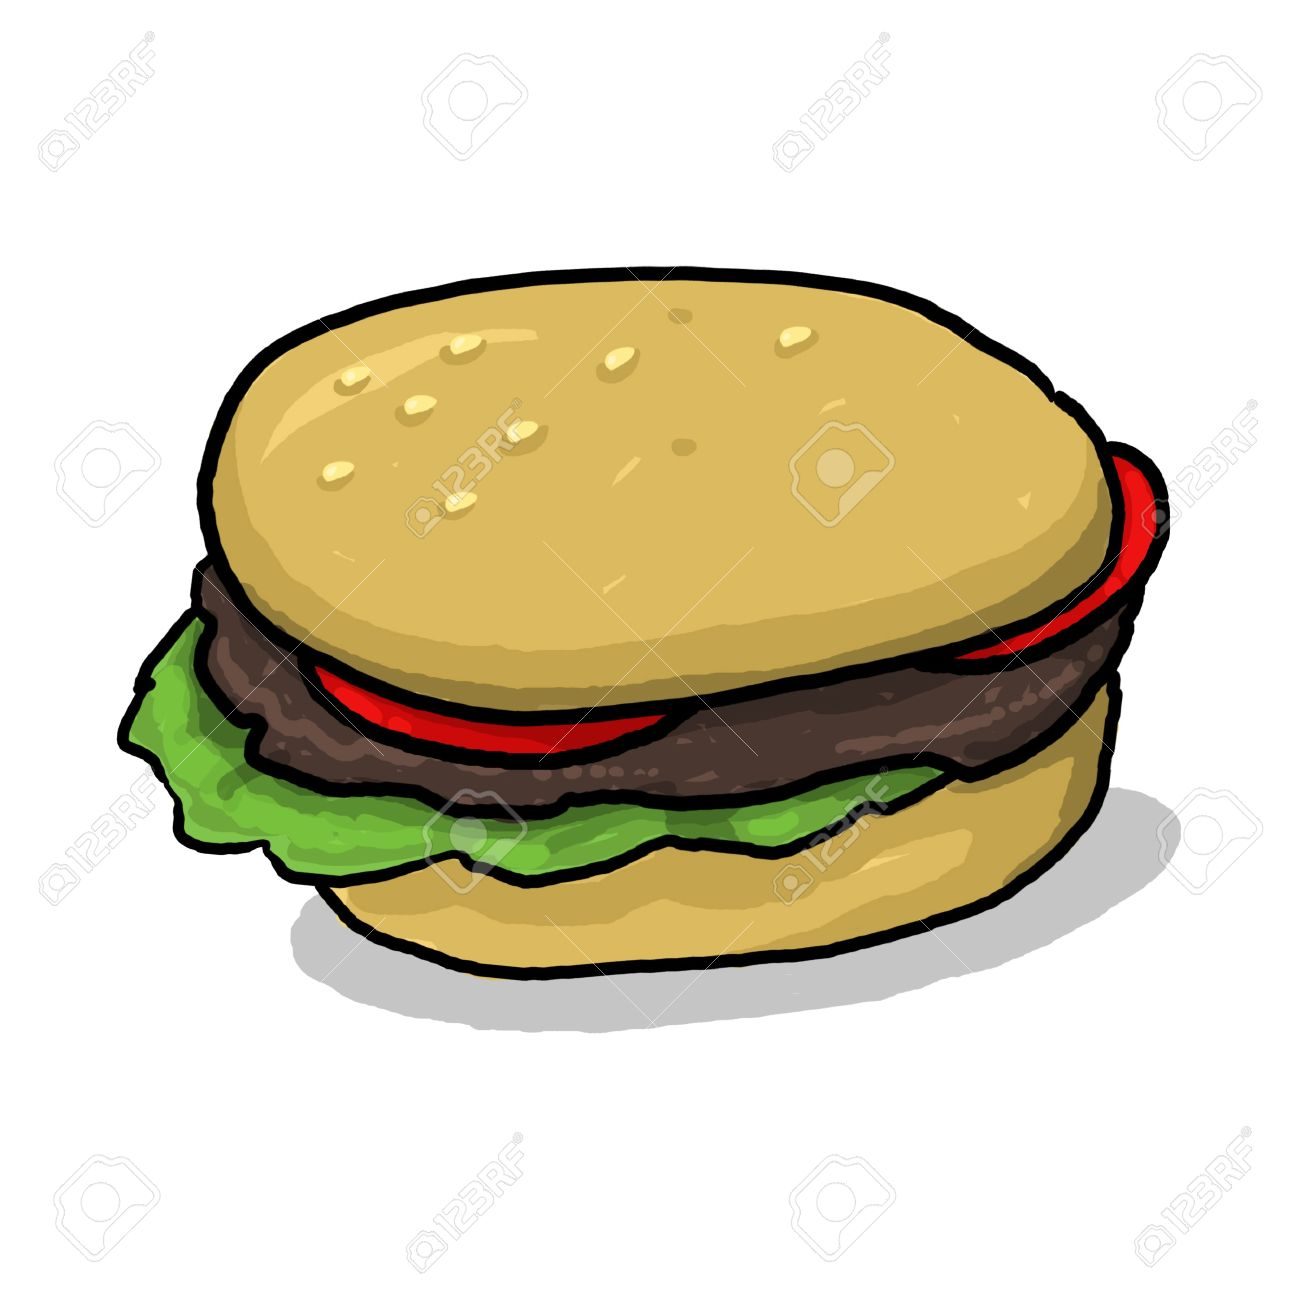 isolated hamburger illustration; hamburger with all the condiments; meat and vegetables between two halves of a hamburger bun; cartoon style hamburger drawing Stock Illustration - 9924049